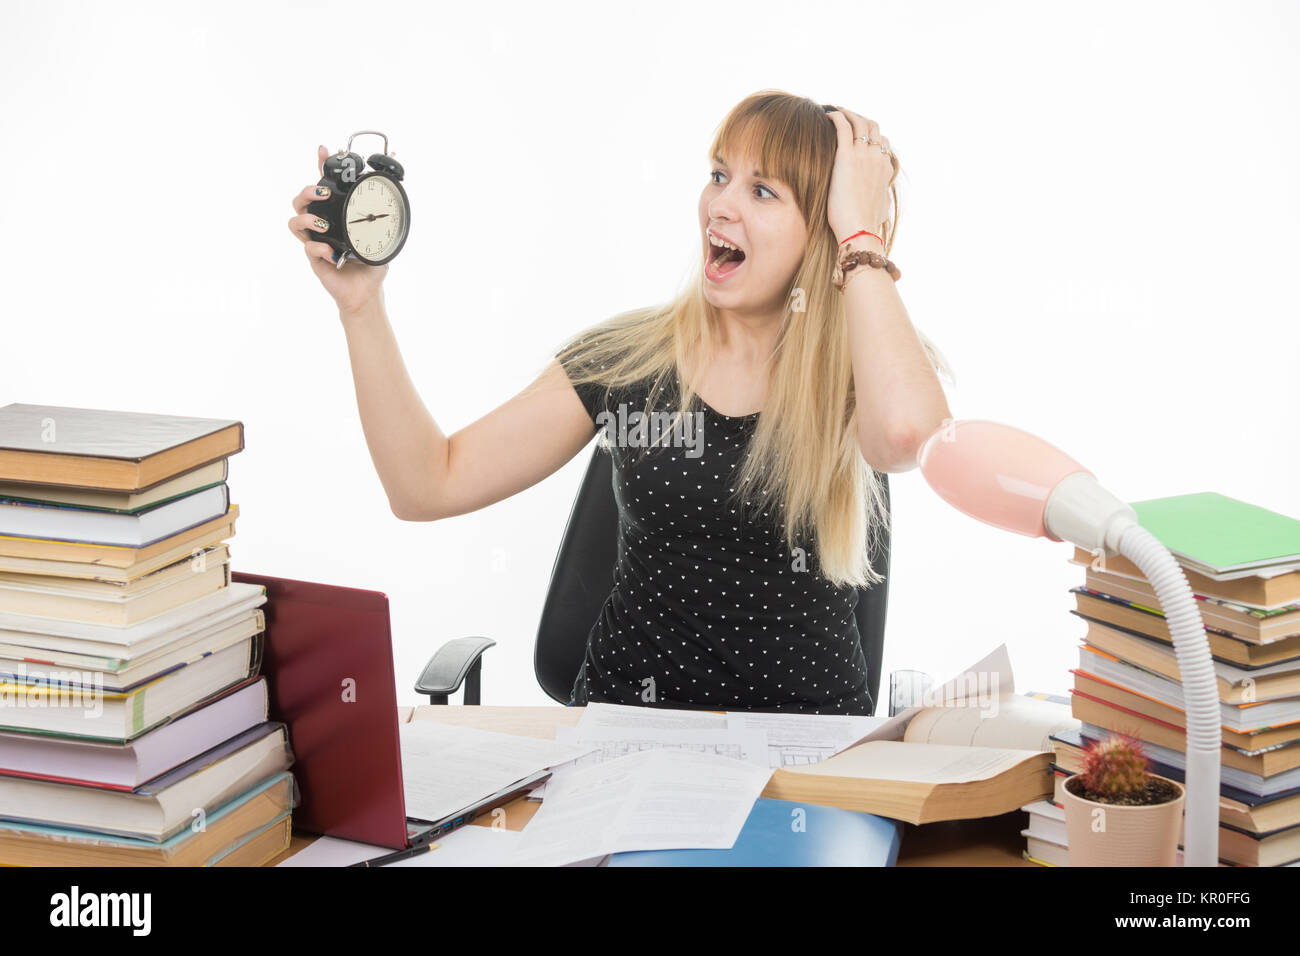 A student with an alarm clock in hands understand that slept exam and screaming looking at his watch - Stock Image